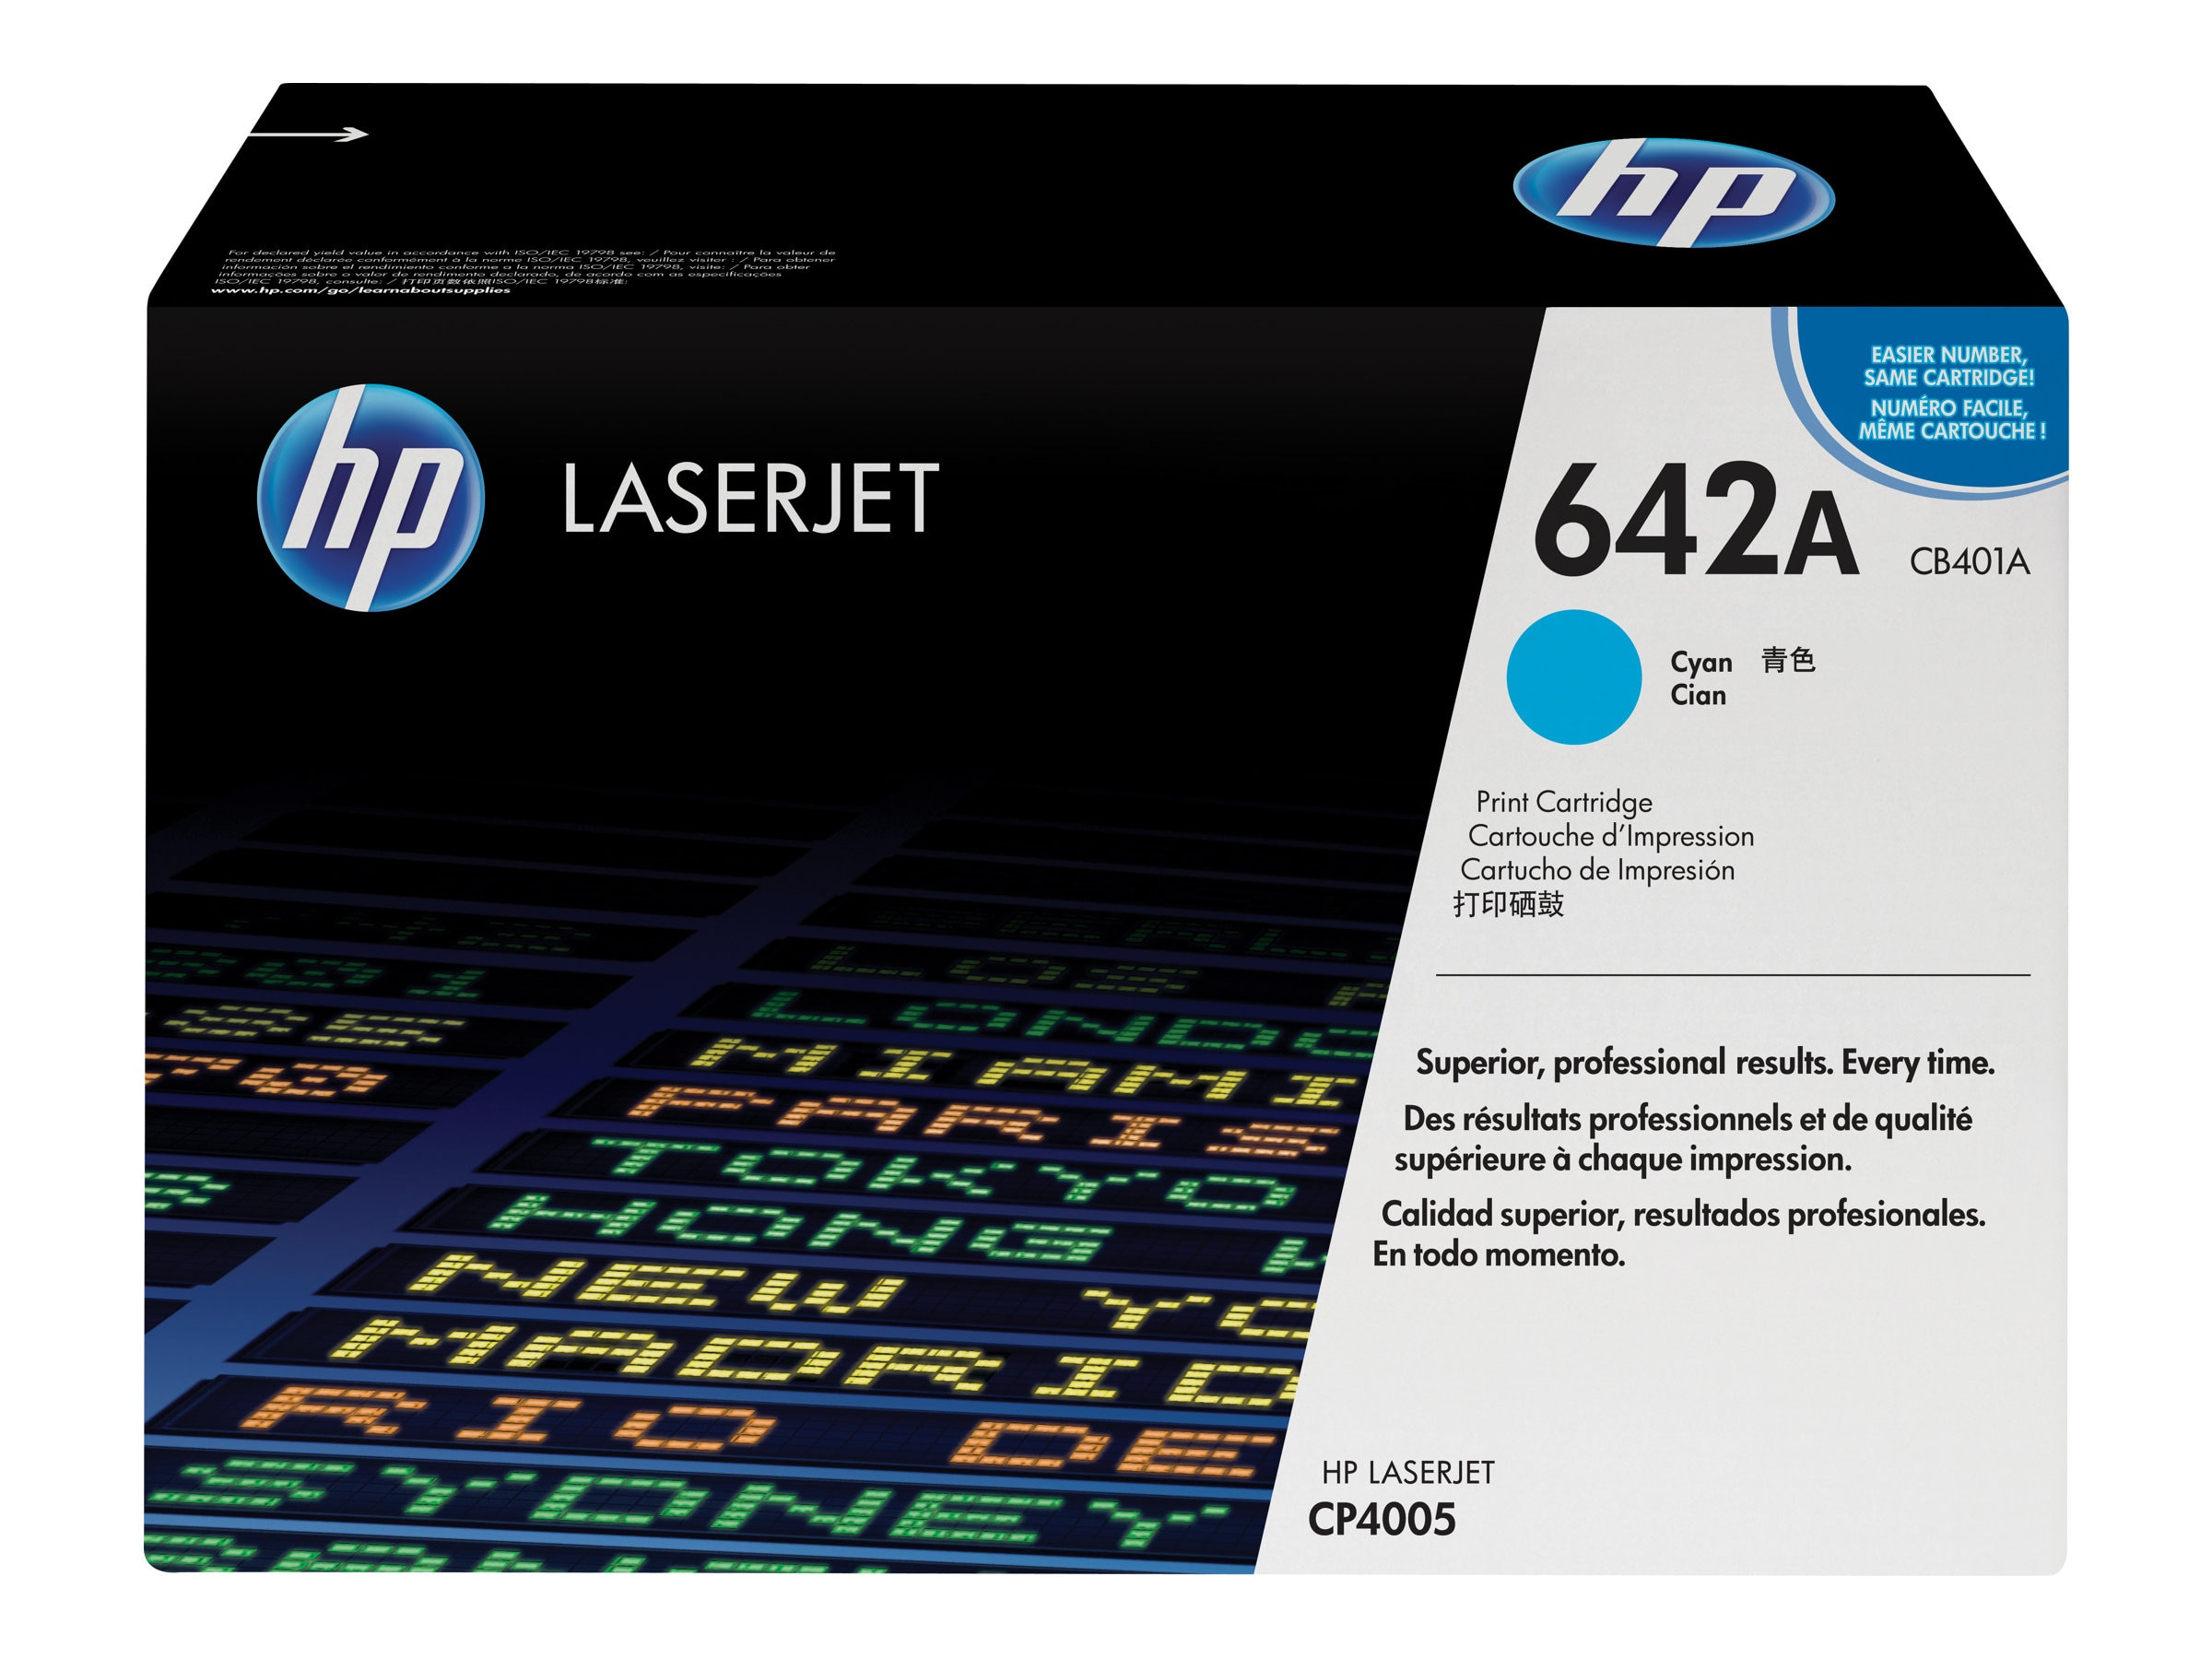 HP 642A (CB401A) Cyan Original LaserJet Toner Cartridge for HP LaserJet CP4005 Printer, CB401A